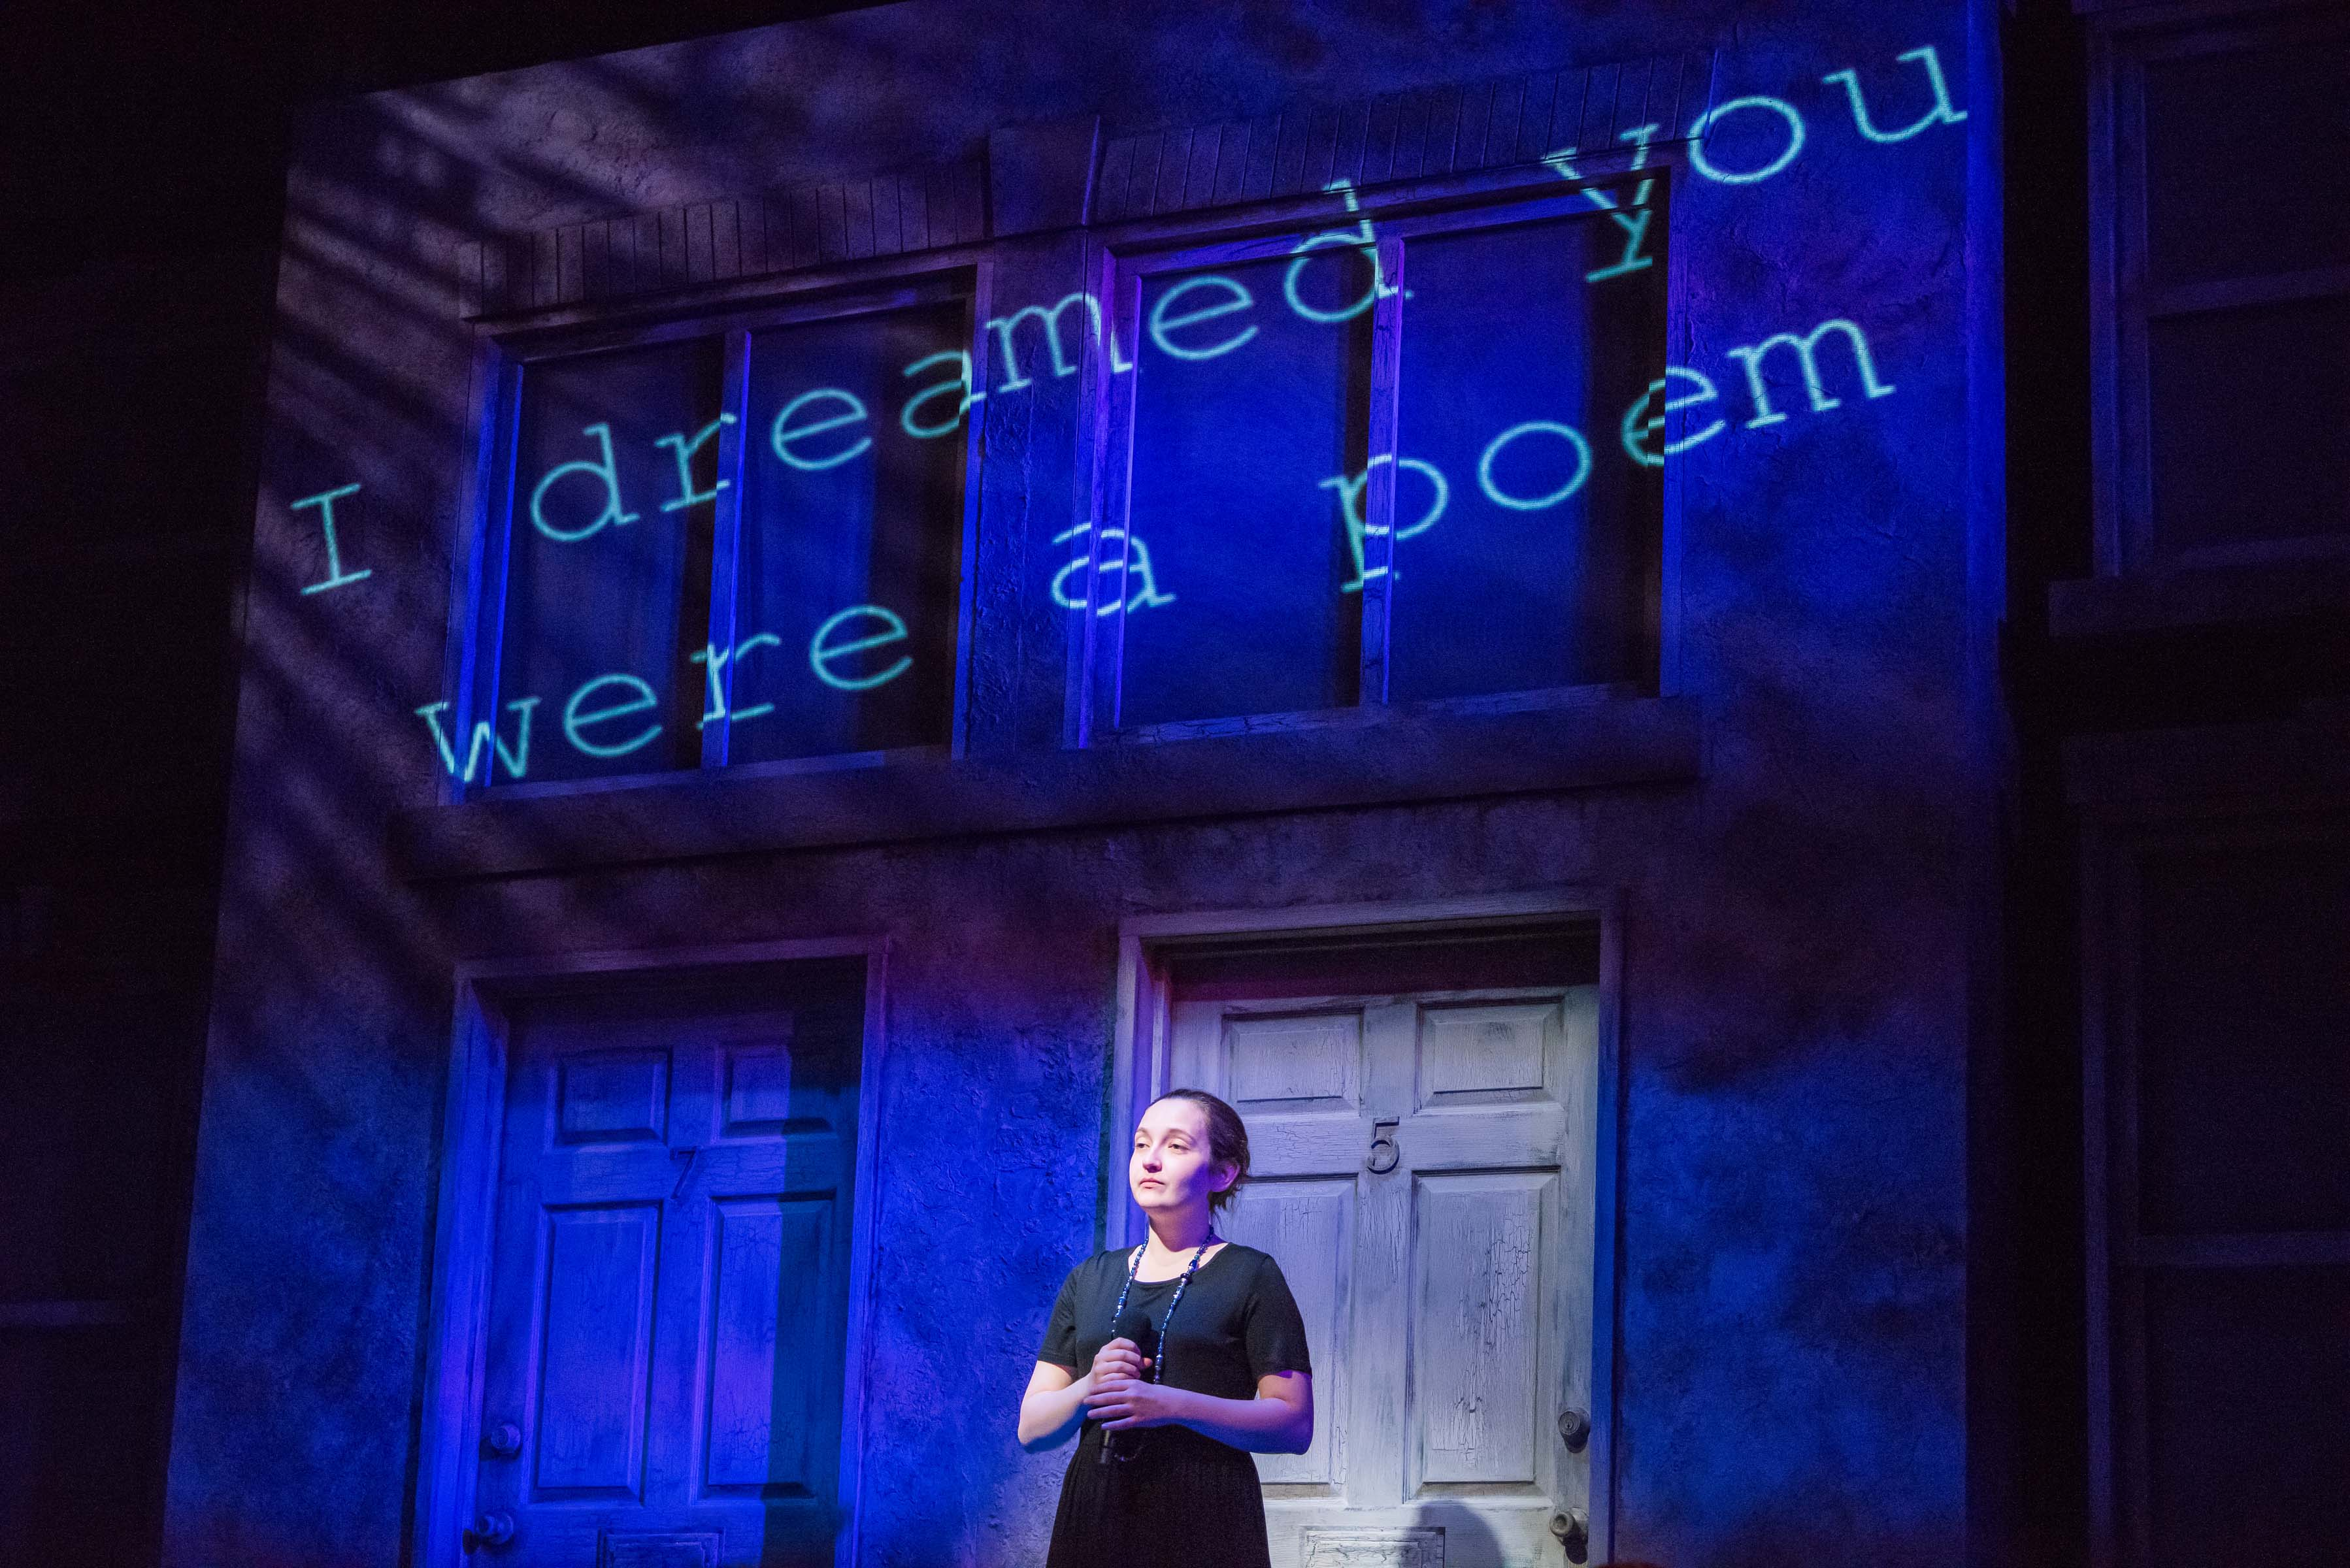 Woman standing with microphone on stage I dreamed you were a poem lit up behind her